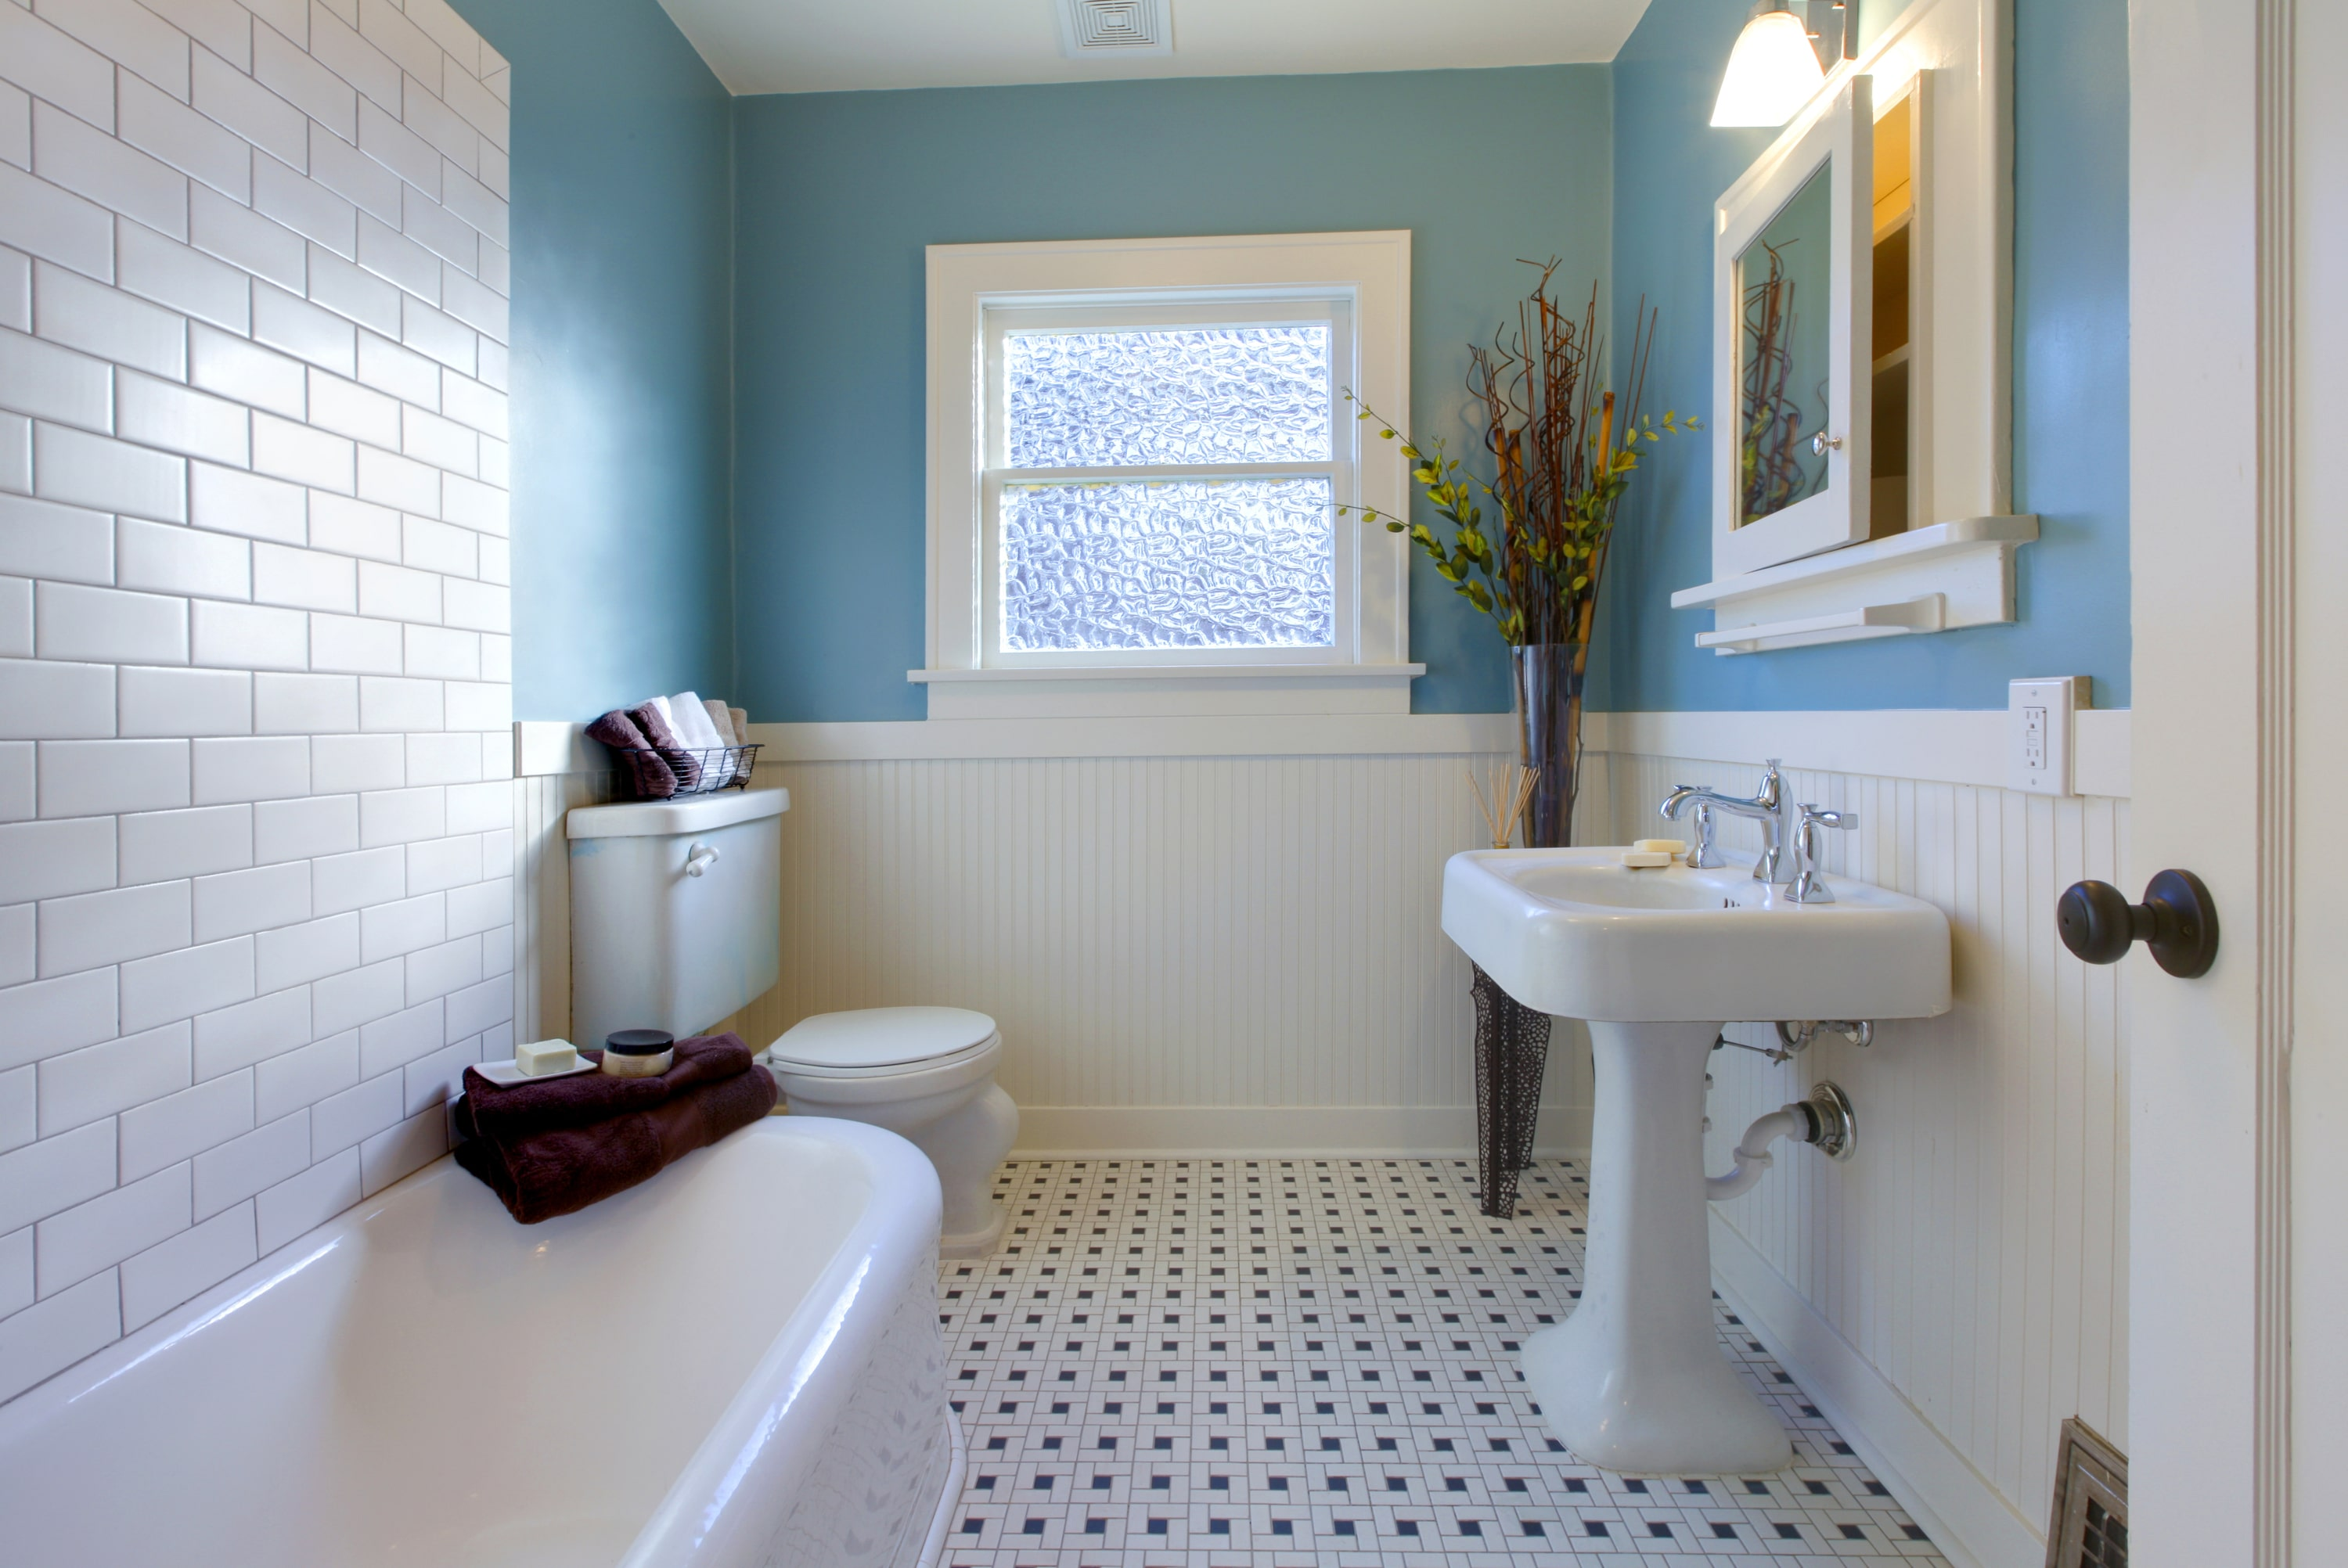 ideas bathroom remodel 8 bathroom design remodeling ideas on a budget 9368